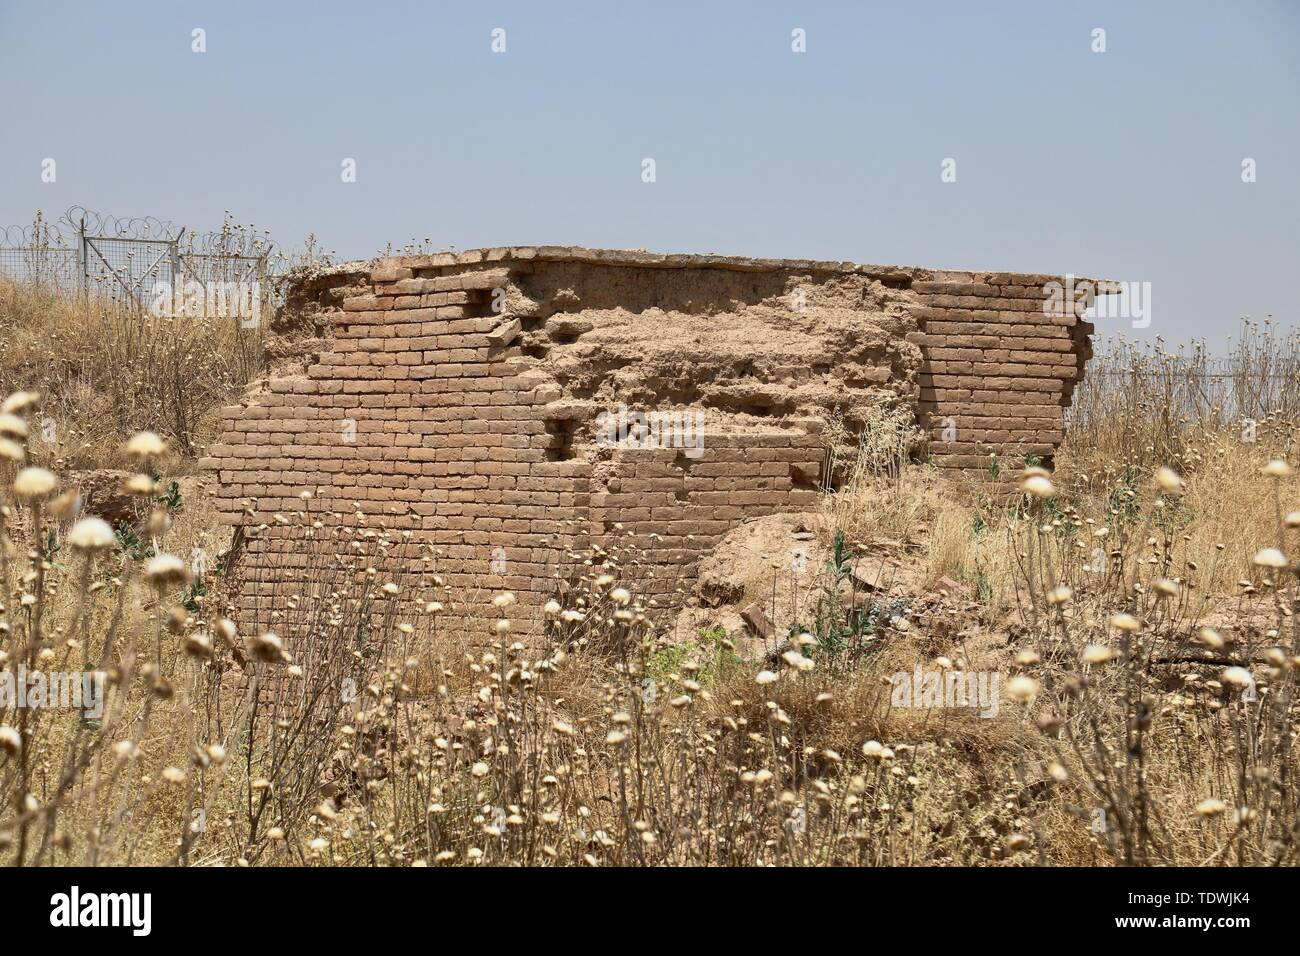 (190619) -- NIMRUD (IRAQ), June 19, 2019 (Xinhua) -- The photo taken on June 13, 2019 shows a destroyed temple at archeological site of Nimrud, Iraq. Covered with thick layer of wild weeds, massive destruction of ancient palaces, temples and ziggurat left no signs for the Iraq's glorious archeological site of Nimrud after nearly three years of liberation from Islamic State (IS). (Xinhua) TO GO WITH Feature: Iraqi archaeological site lies in ruins after nearly 3 years of liberation from IS - Stock Image